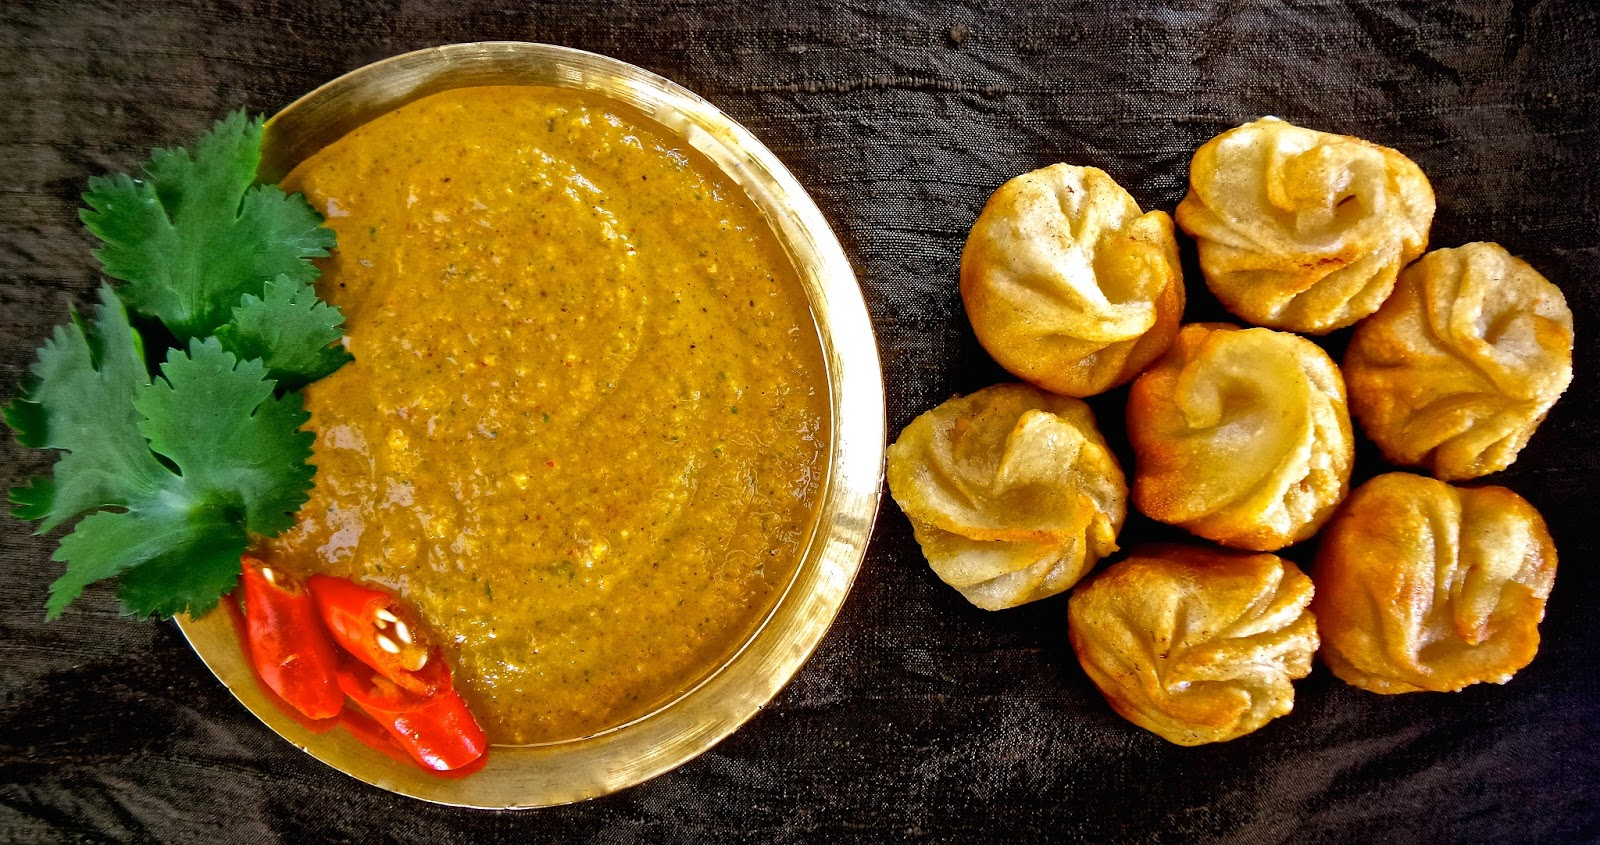 Keep calm curry on momo ko achar nepali chutney for dumplings momo ko achar nepali chutney for dumplings forumfinder Image collections